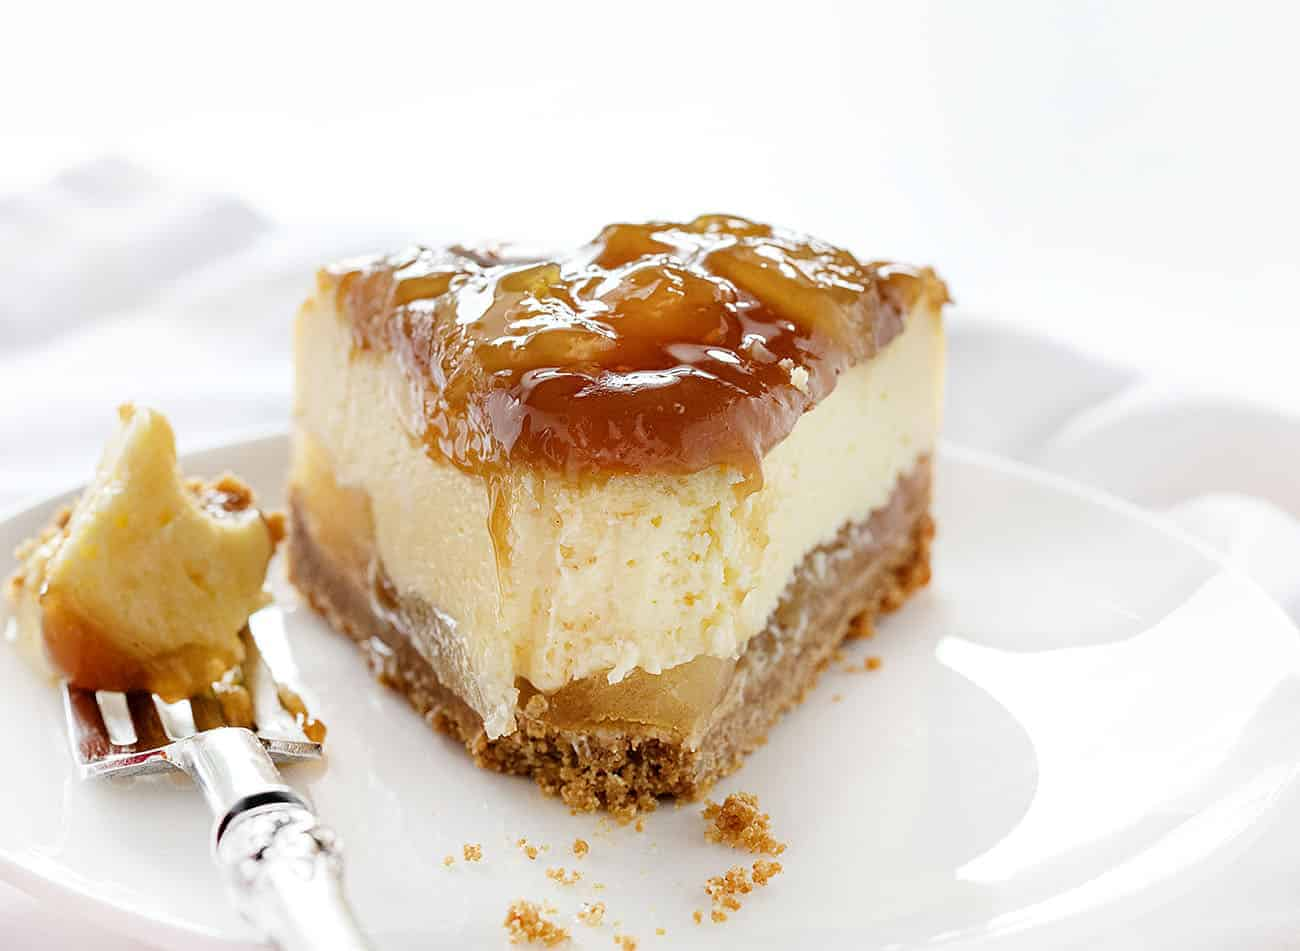 Bite Out of a Slice of Caramel Apple Cheesecake